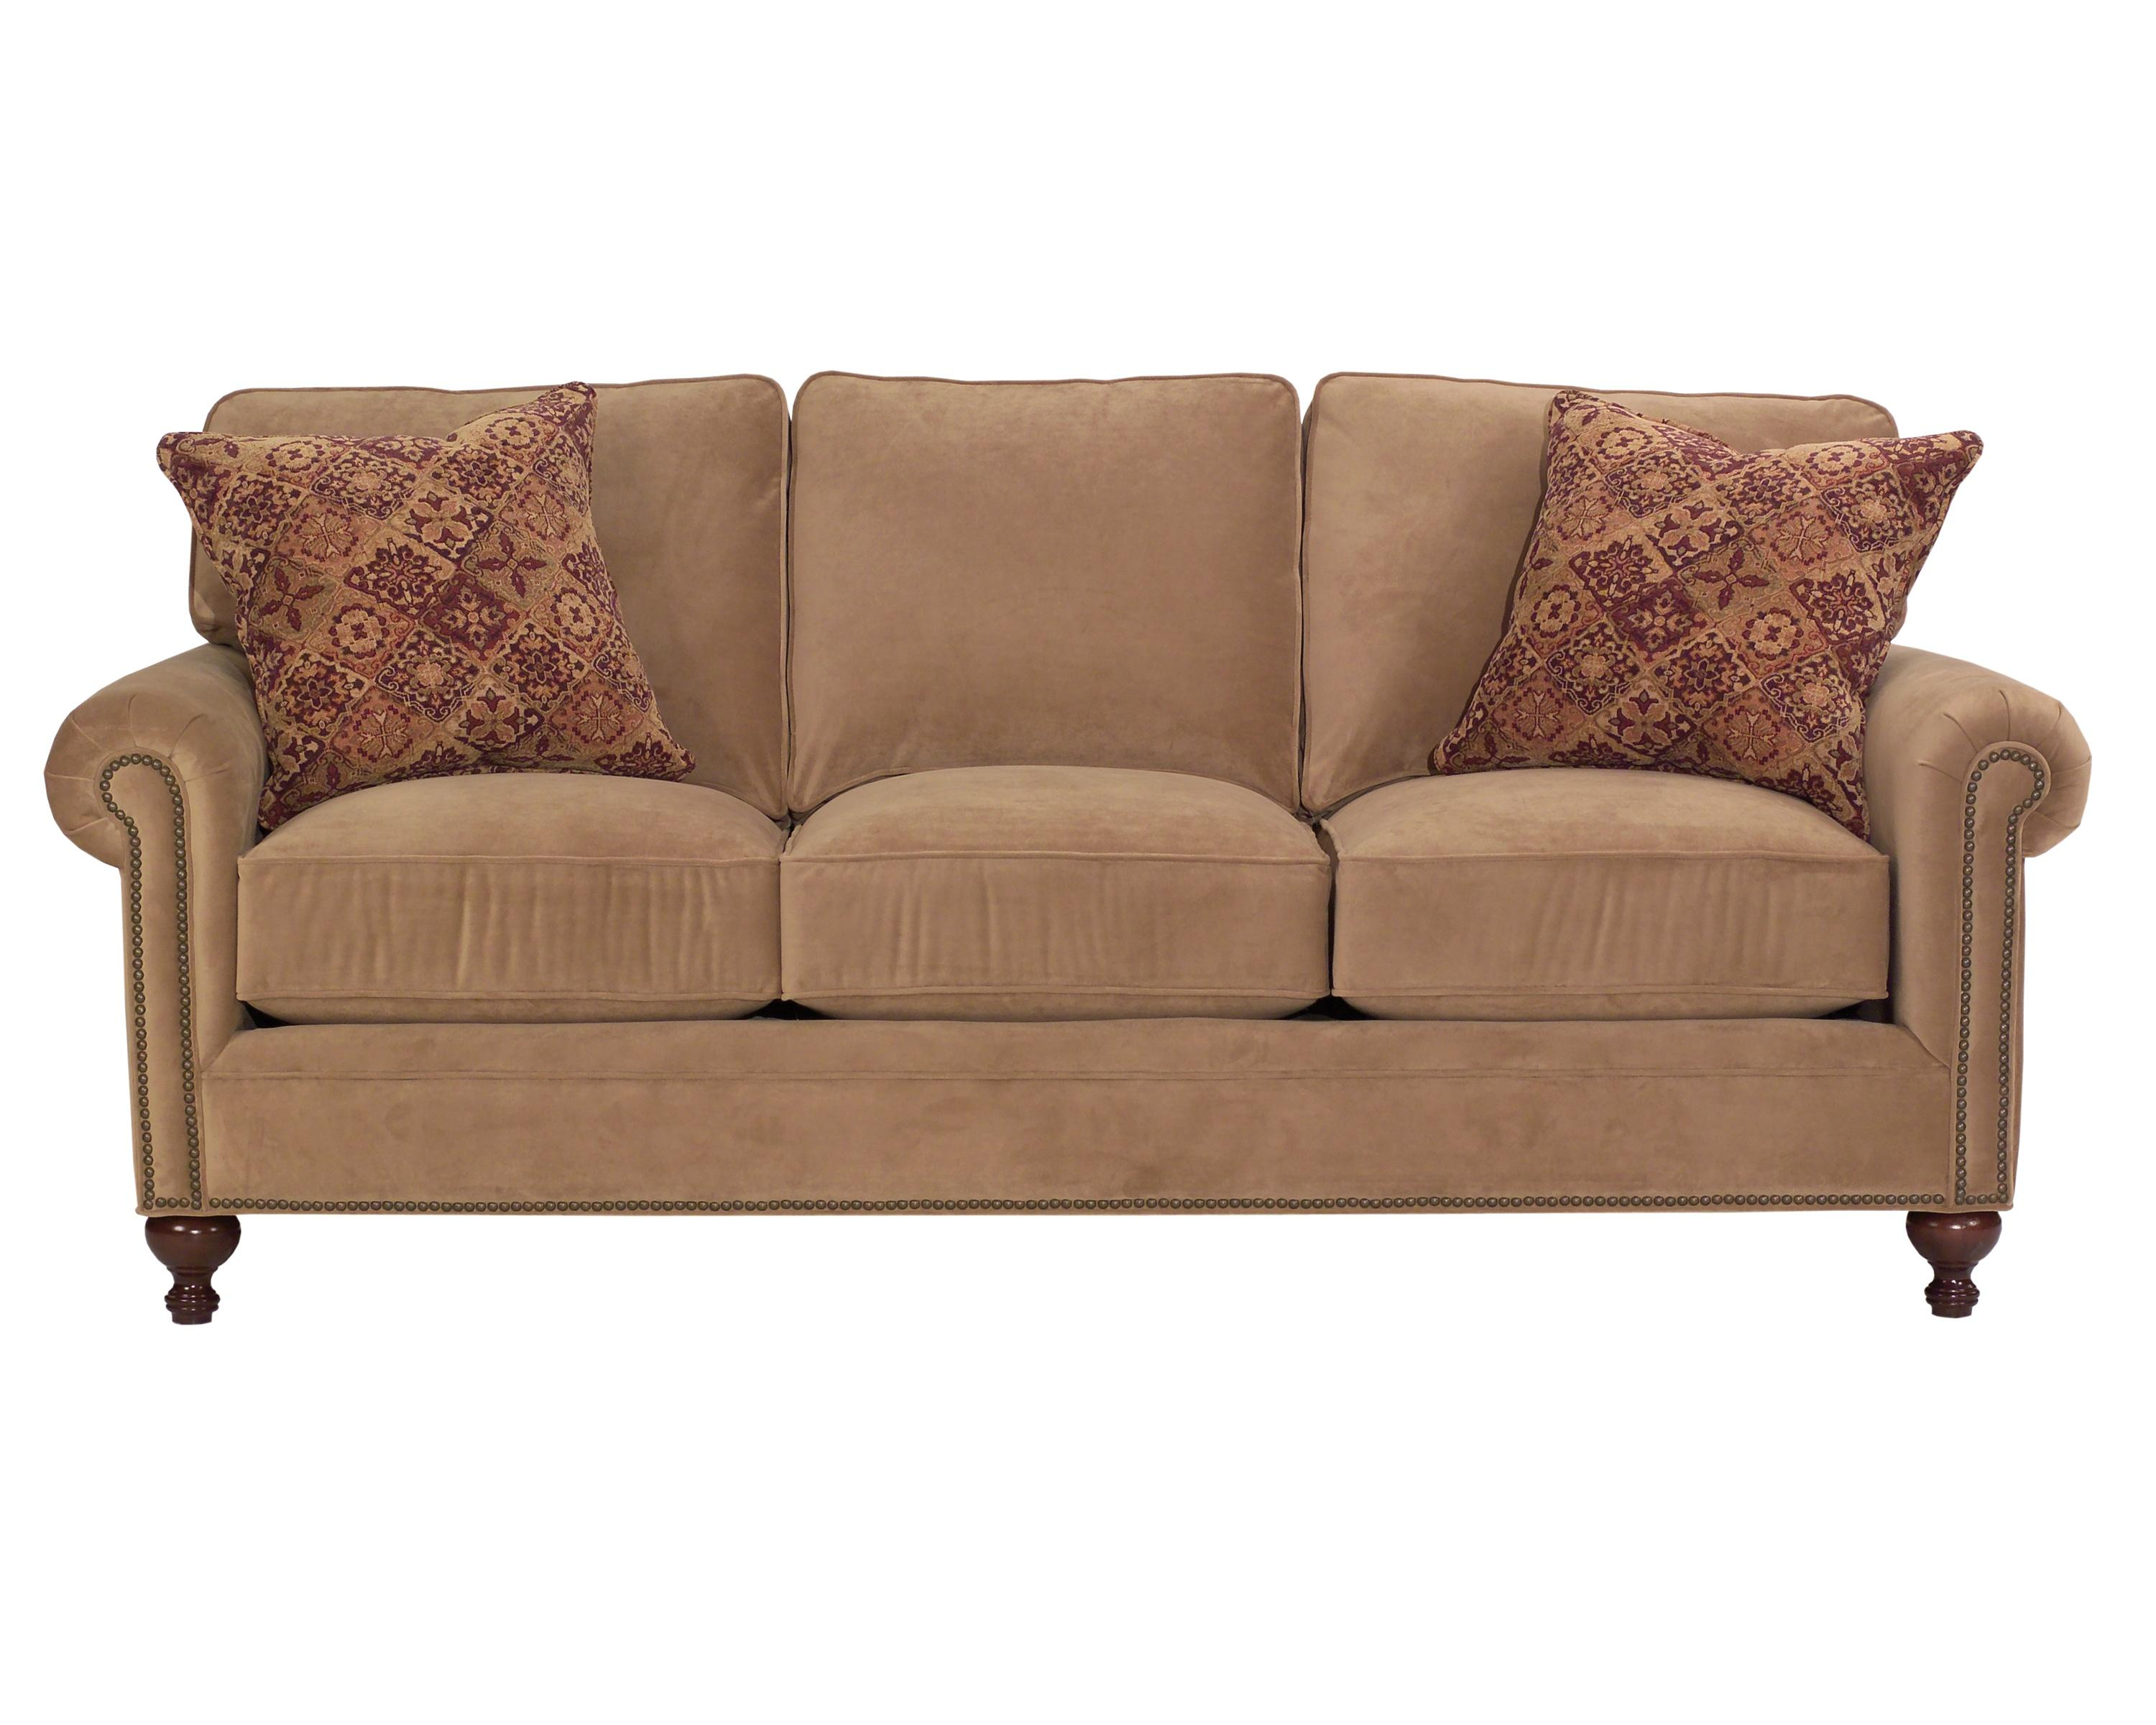 Broyhill Furniture Harrison 6751 3 Traditional Style Sofa With Exposed Wood Feet John V